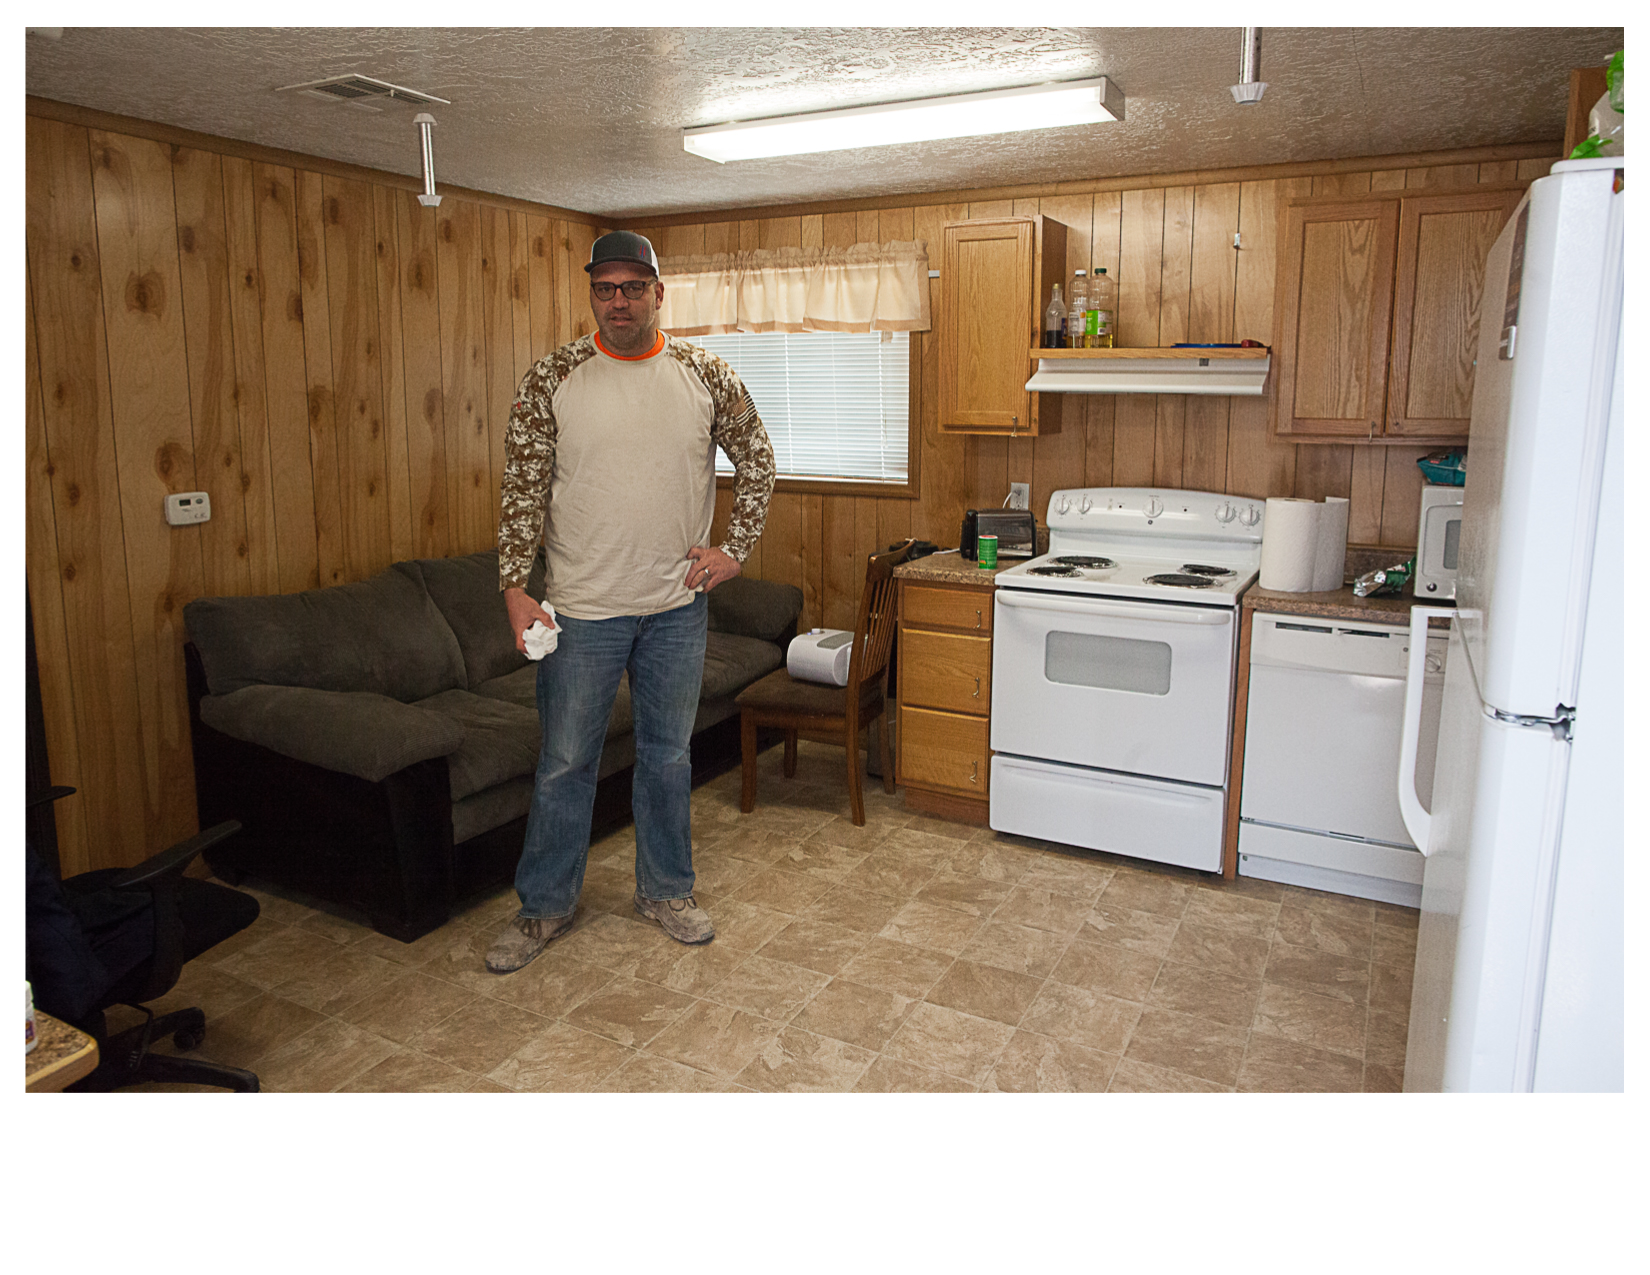 Inside Duncan's Oilfield Trailer Home, Pecos, TX